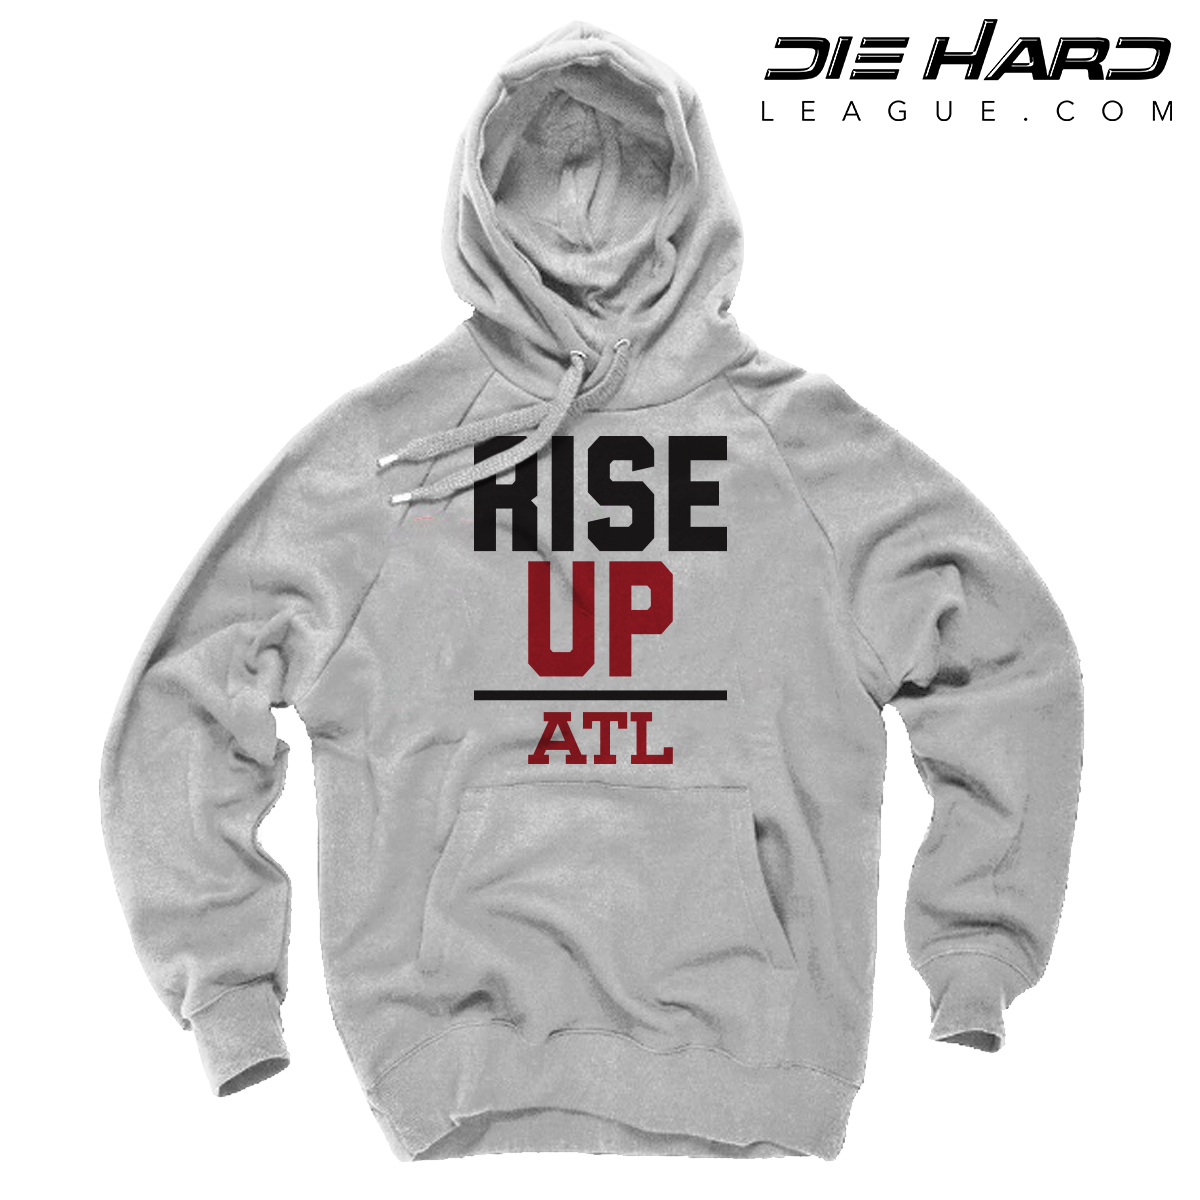 cheap for discount d6883 506d1 Atlanta Falcons Sweater - Rise Up White Hoodie